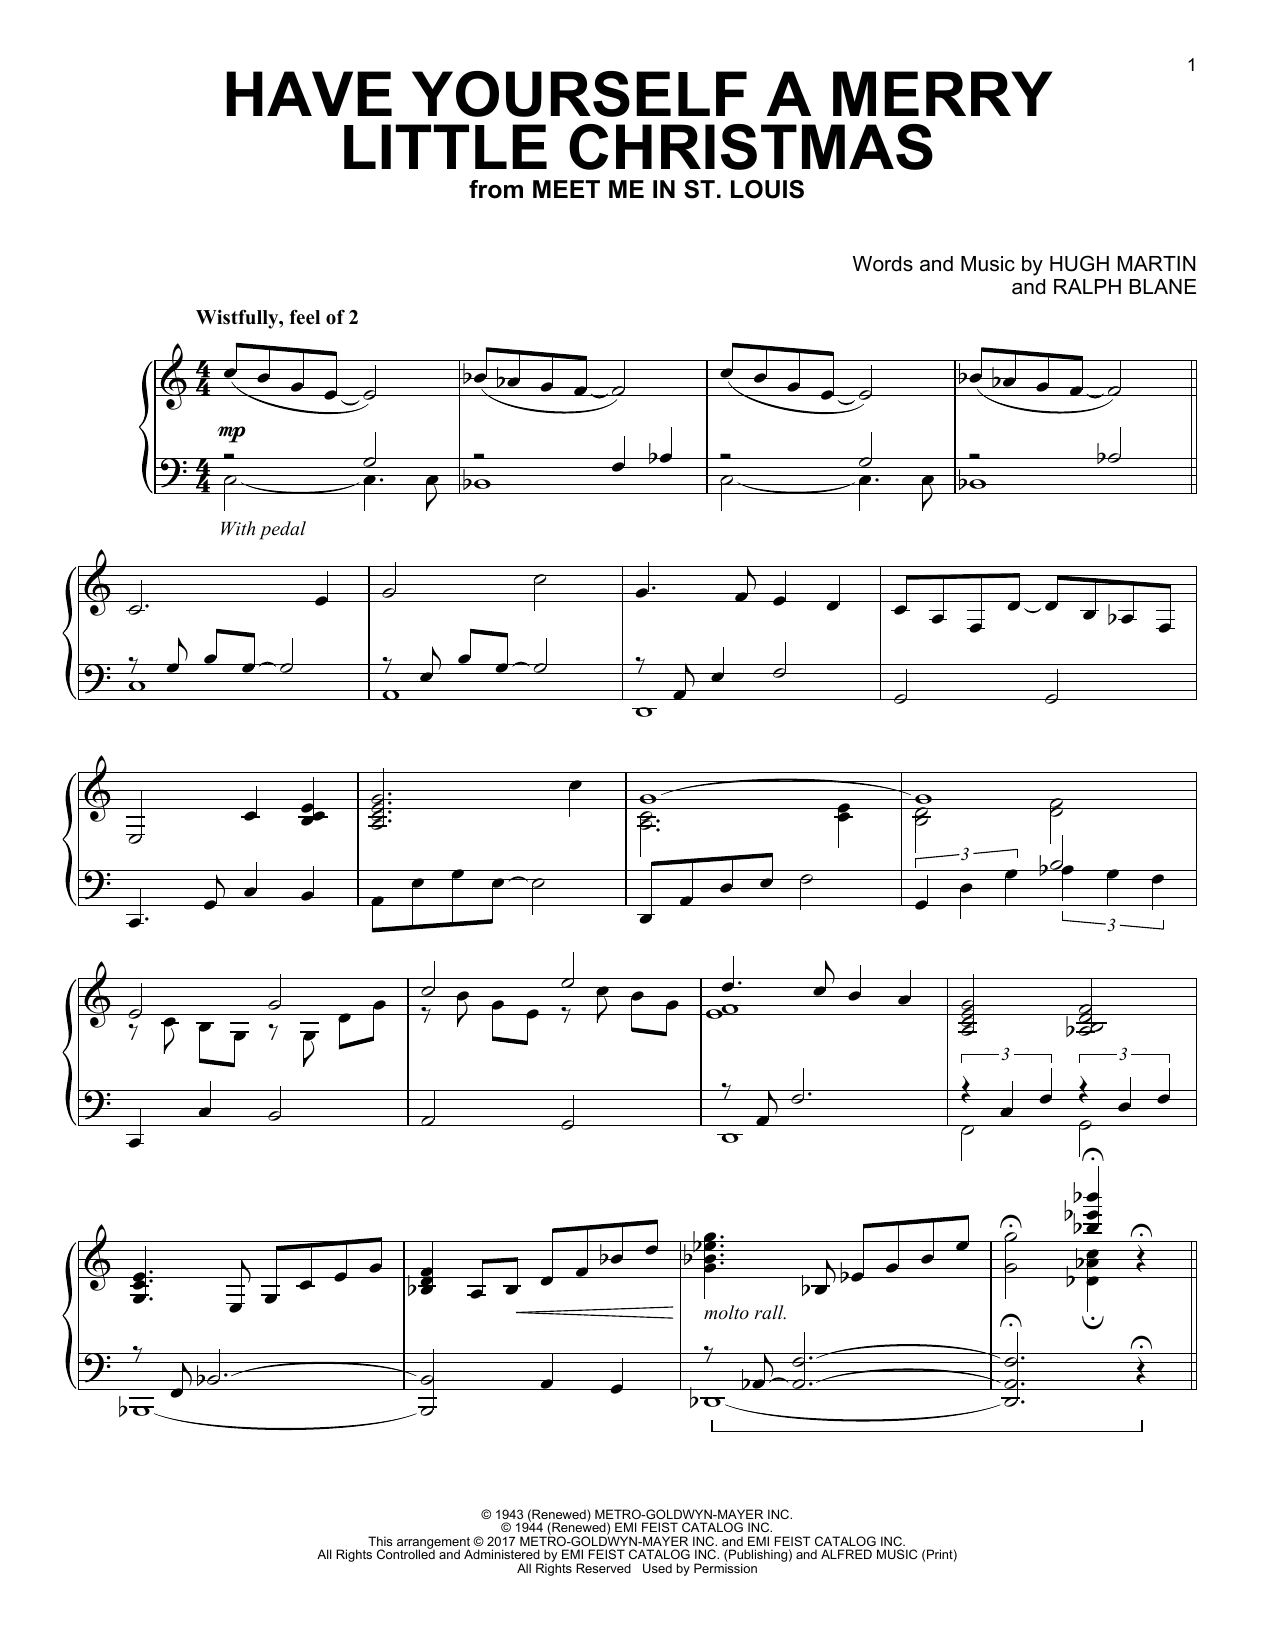 Download Ralph Blane 'Have Yourself A Merry Little Christmas' Digital Sheet Music Notes & Chords and start playing in minutes